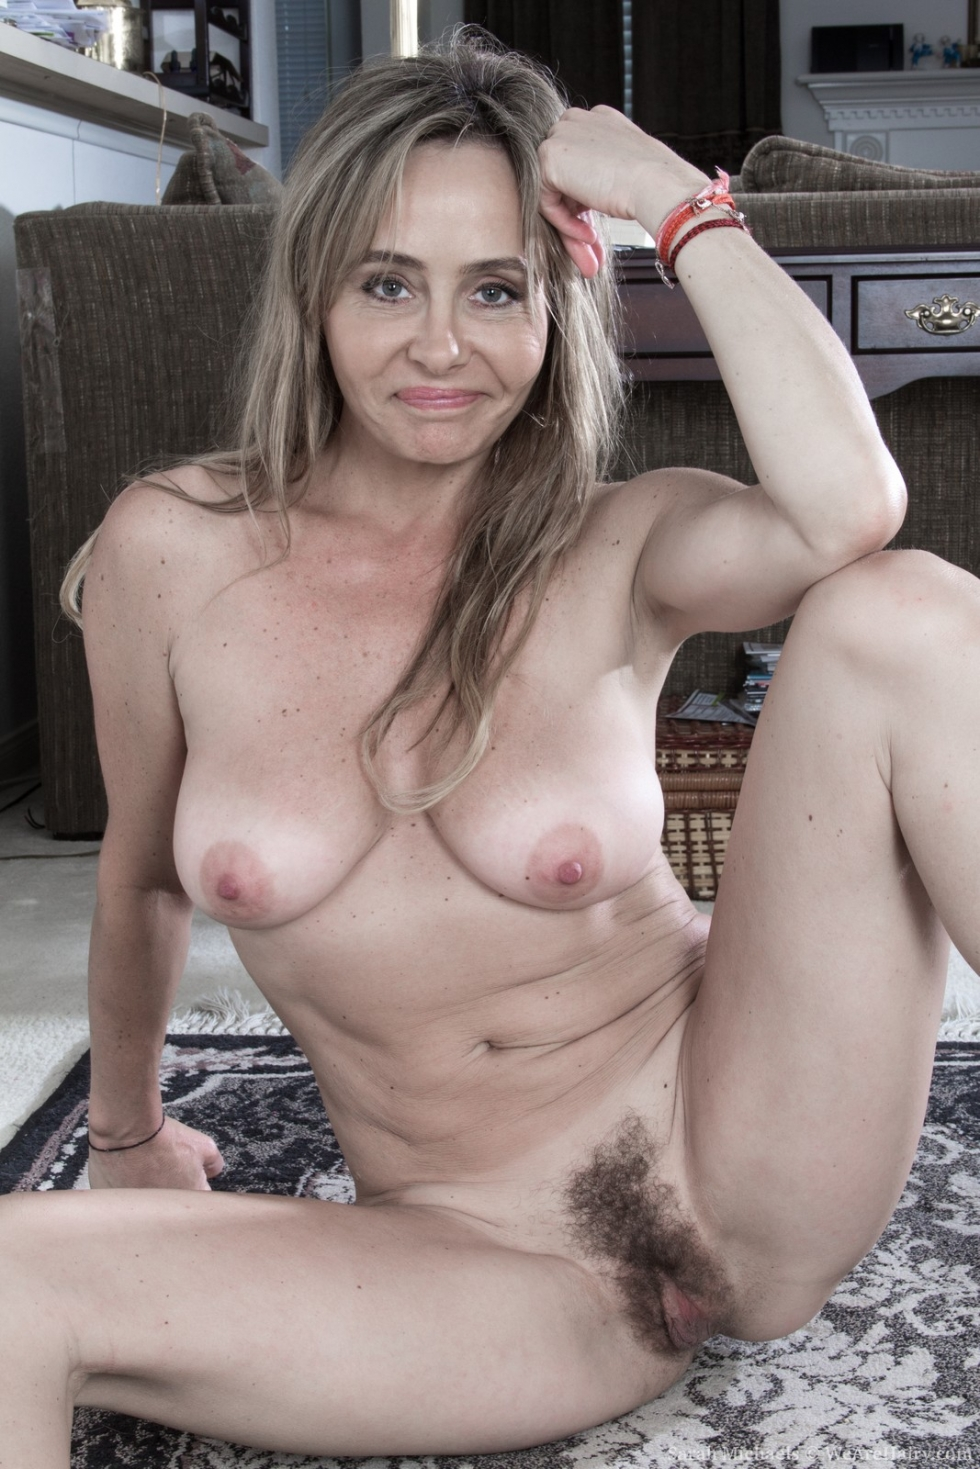 Hot milf striptease